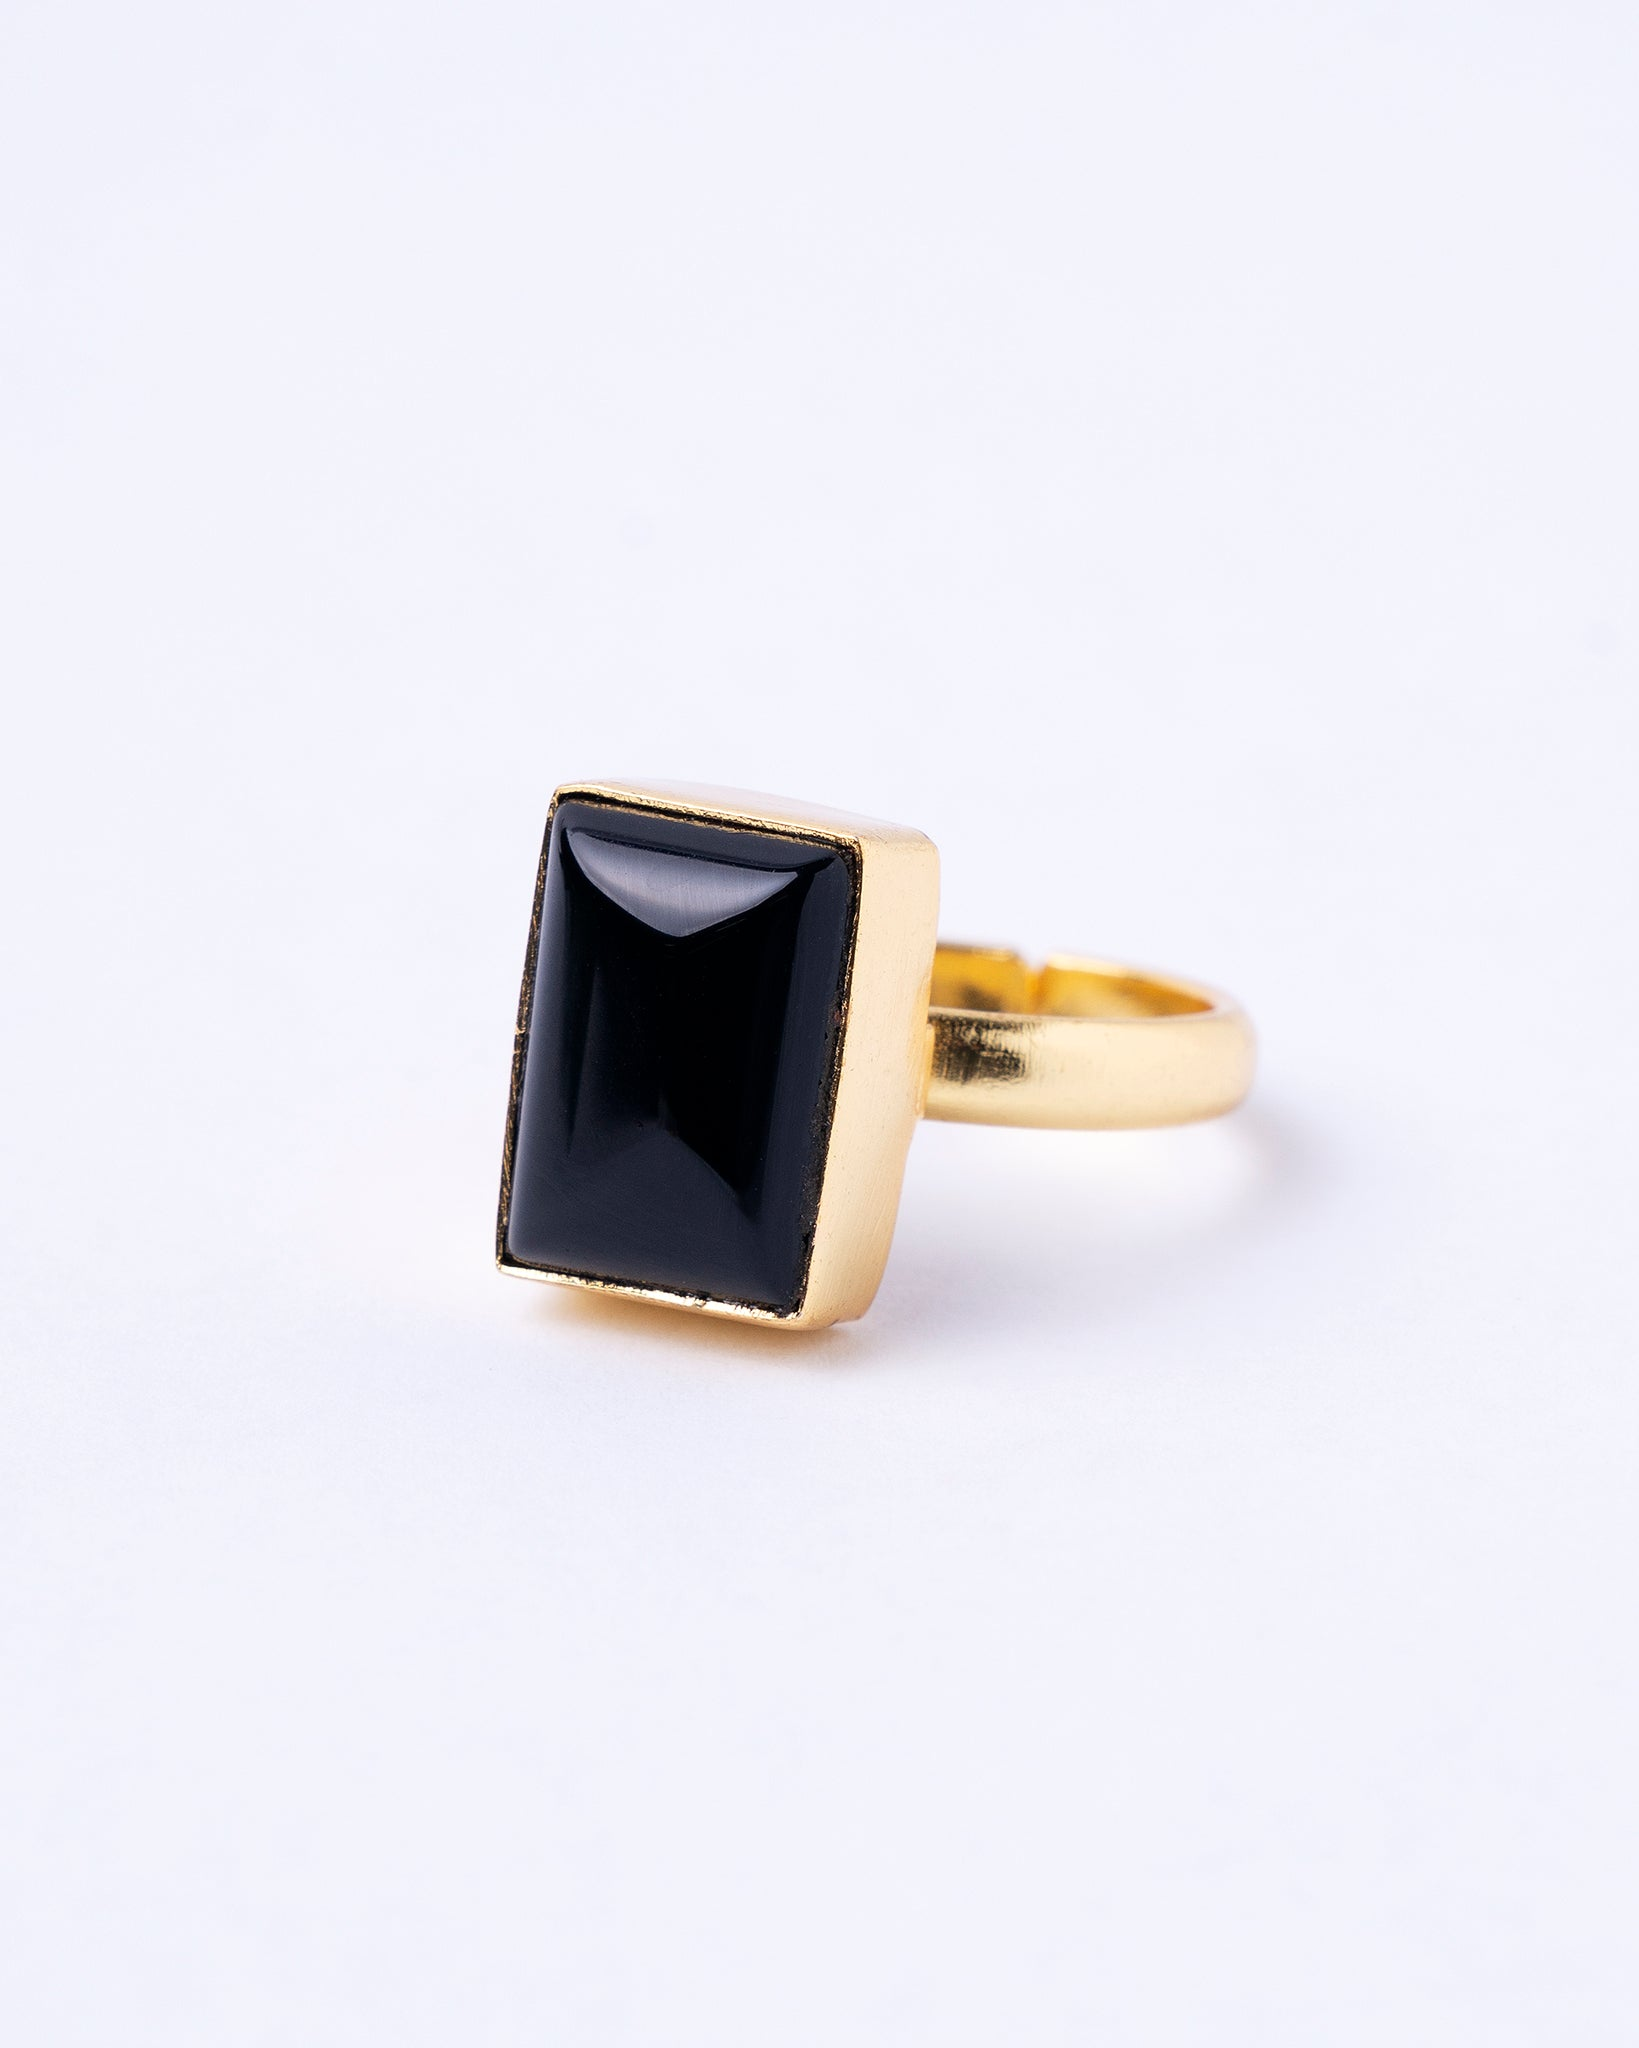 SQUARE CASTED STONE RING